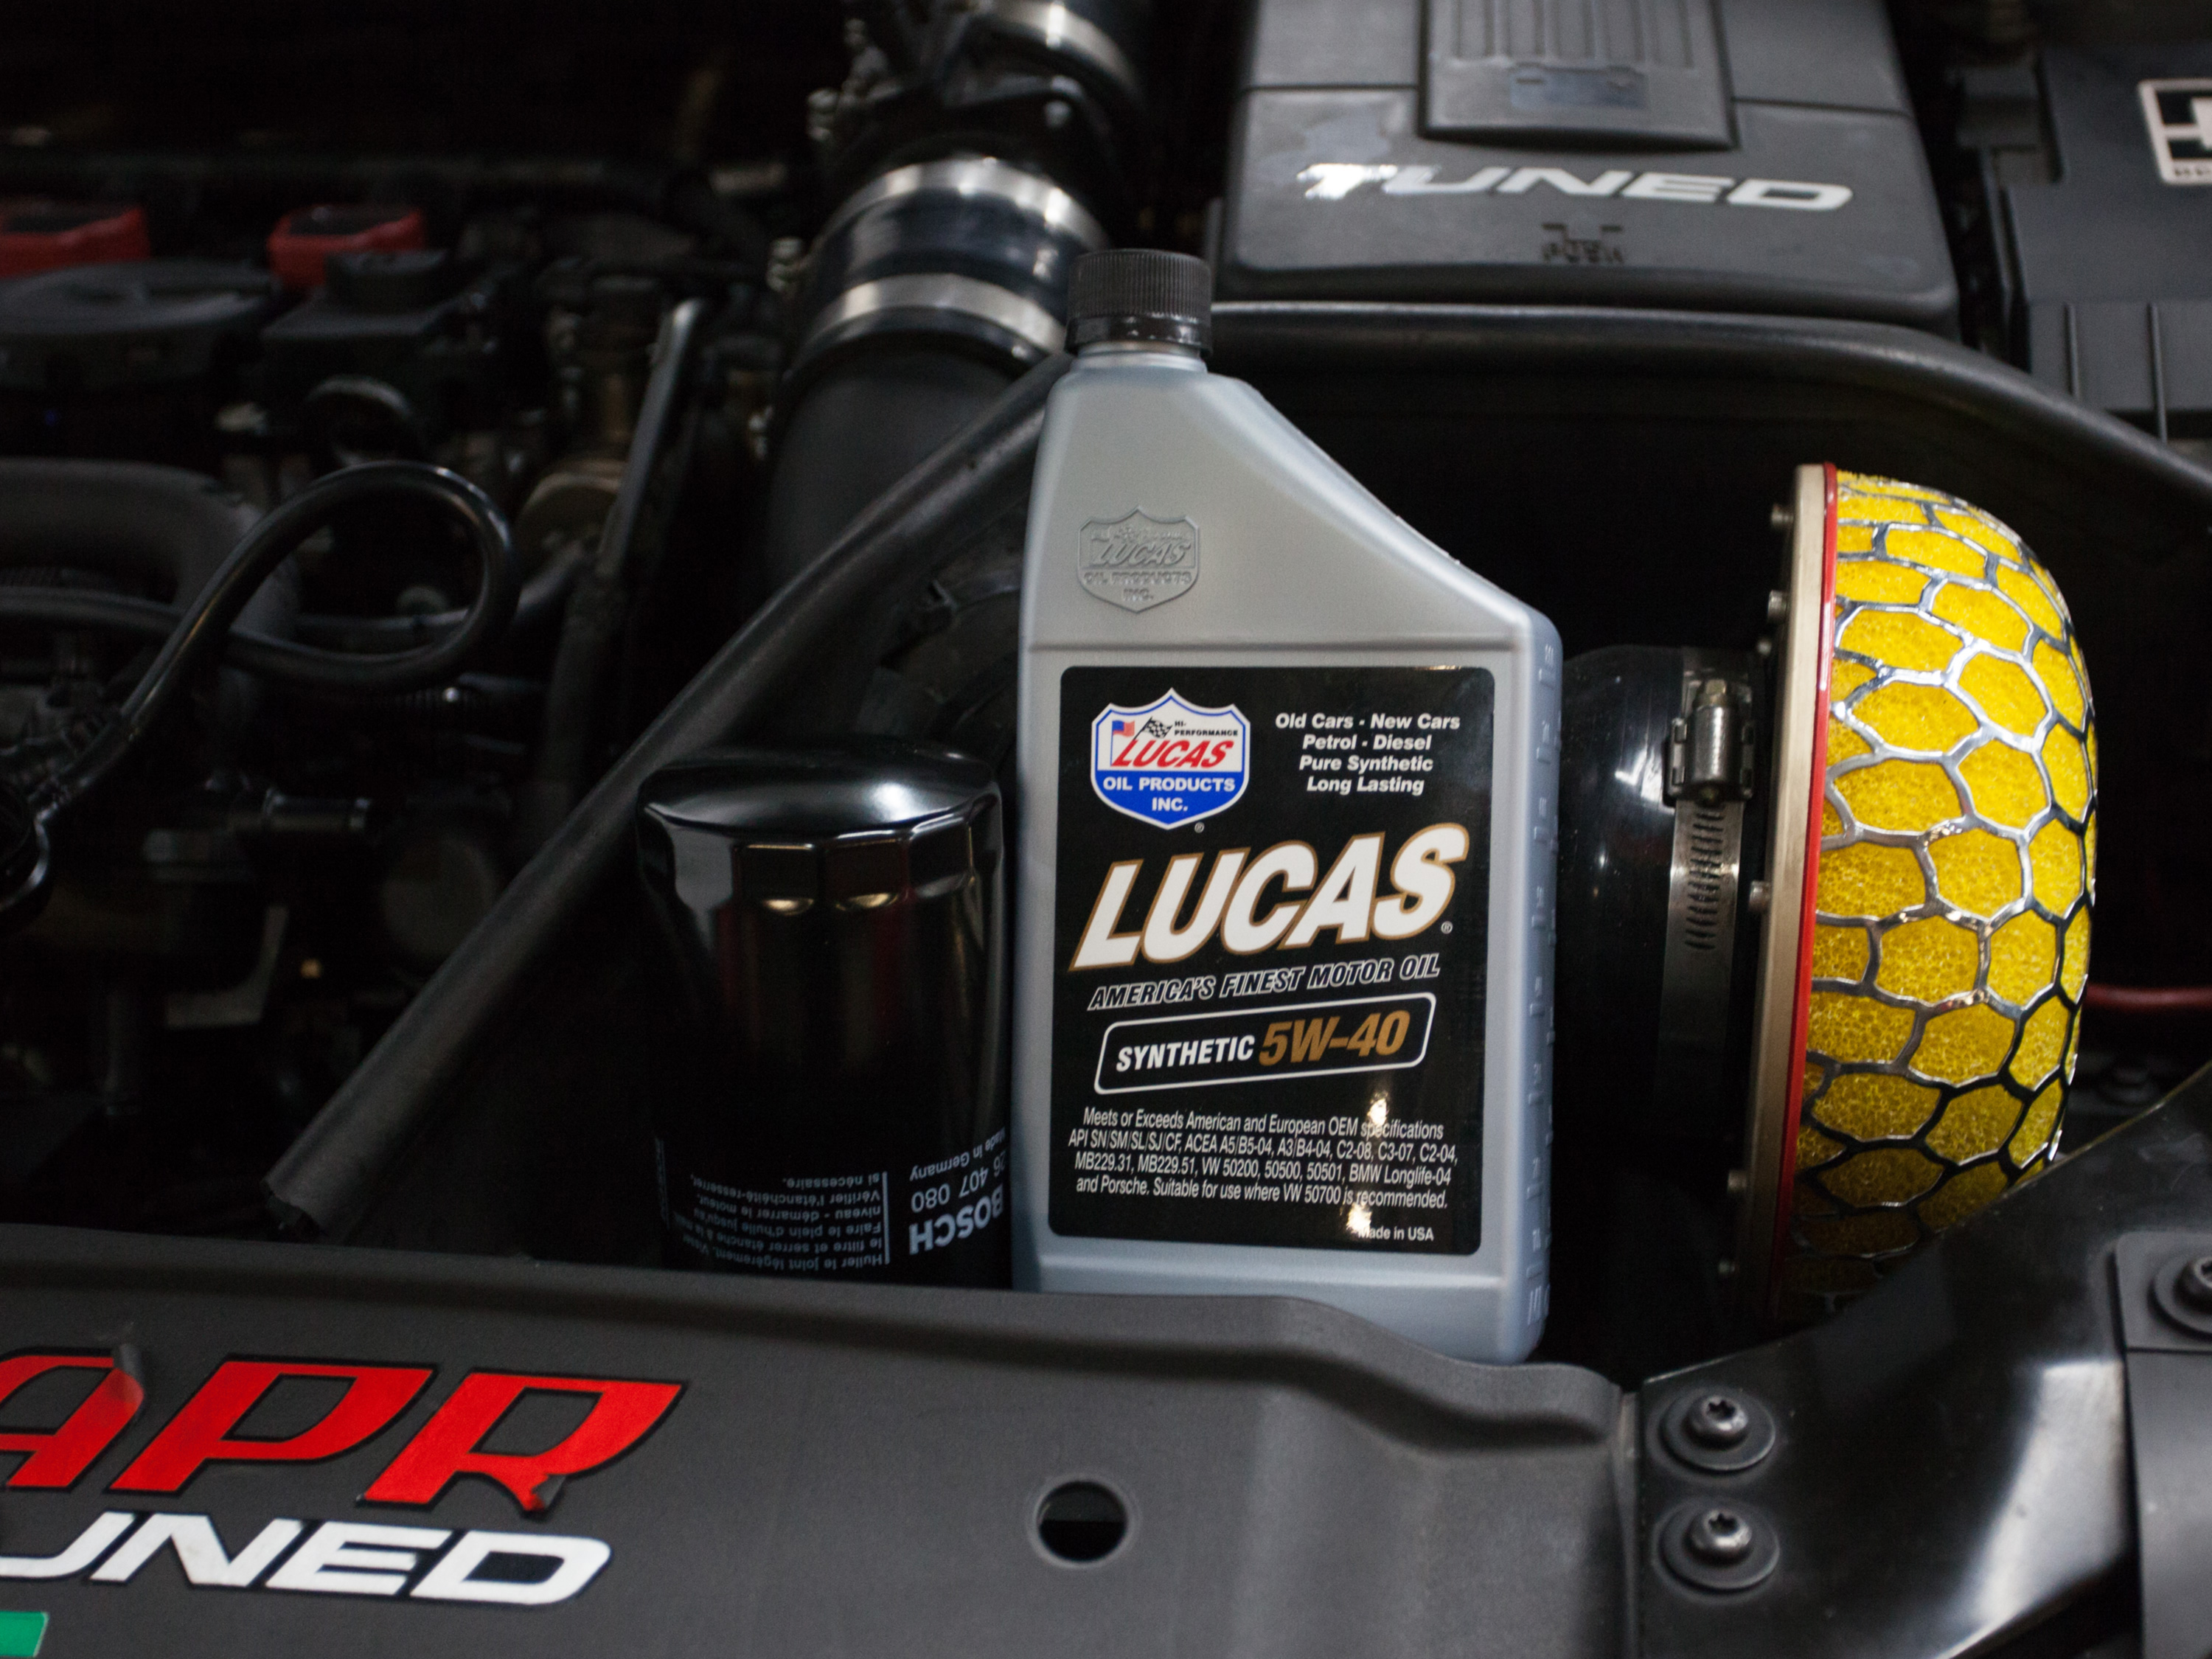 Lucas Synthetic 5W40 Vehicle Servicing (Continental Car Make)